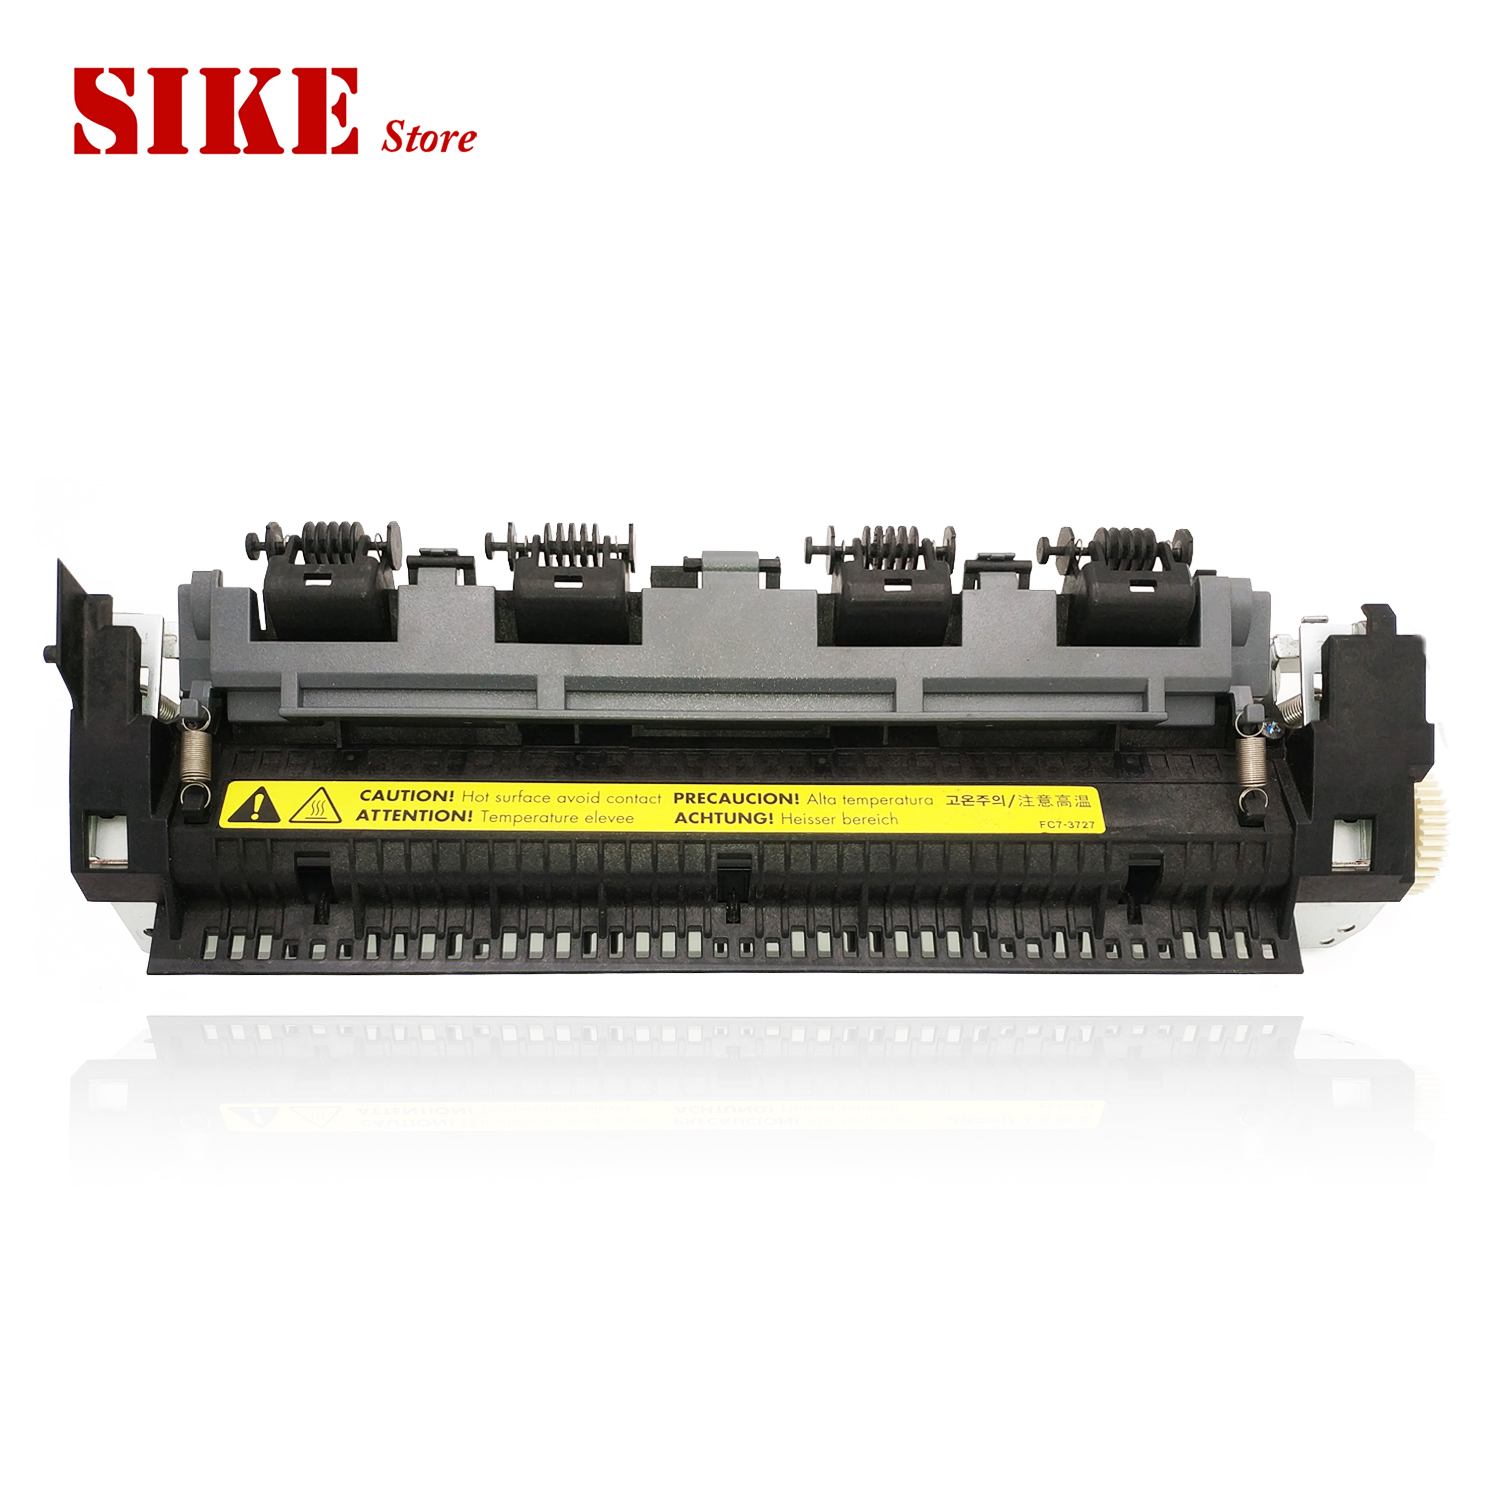 FM2-8891 FM2-8892 Fuser Assembly Unit For Canon MF4010 MF4012 MF4012G MF4018 MF 4010 4012 4018 Fusing Heating Fixing Assy image